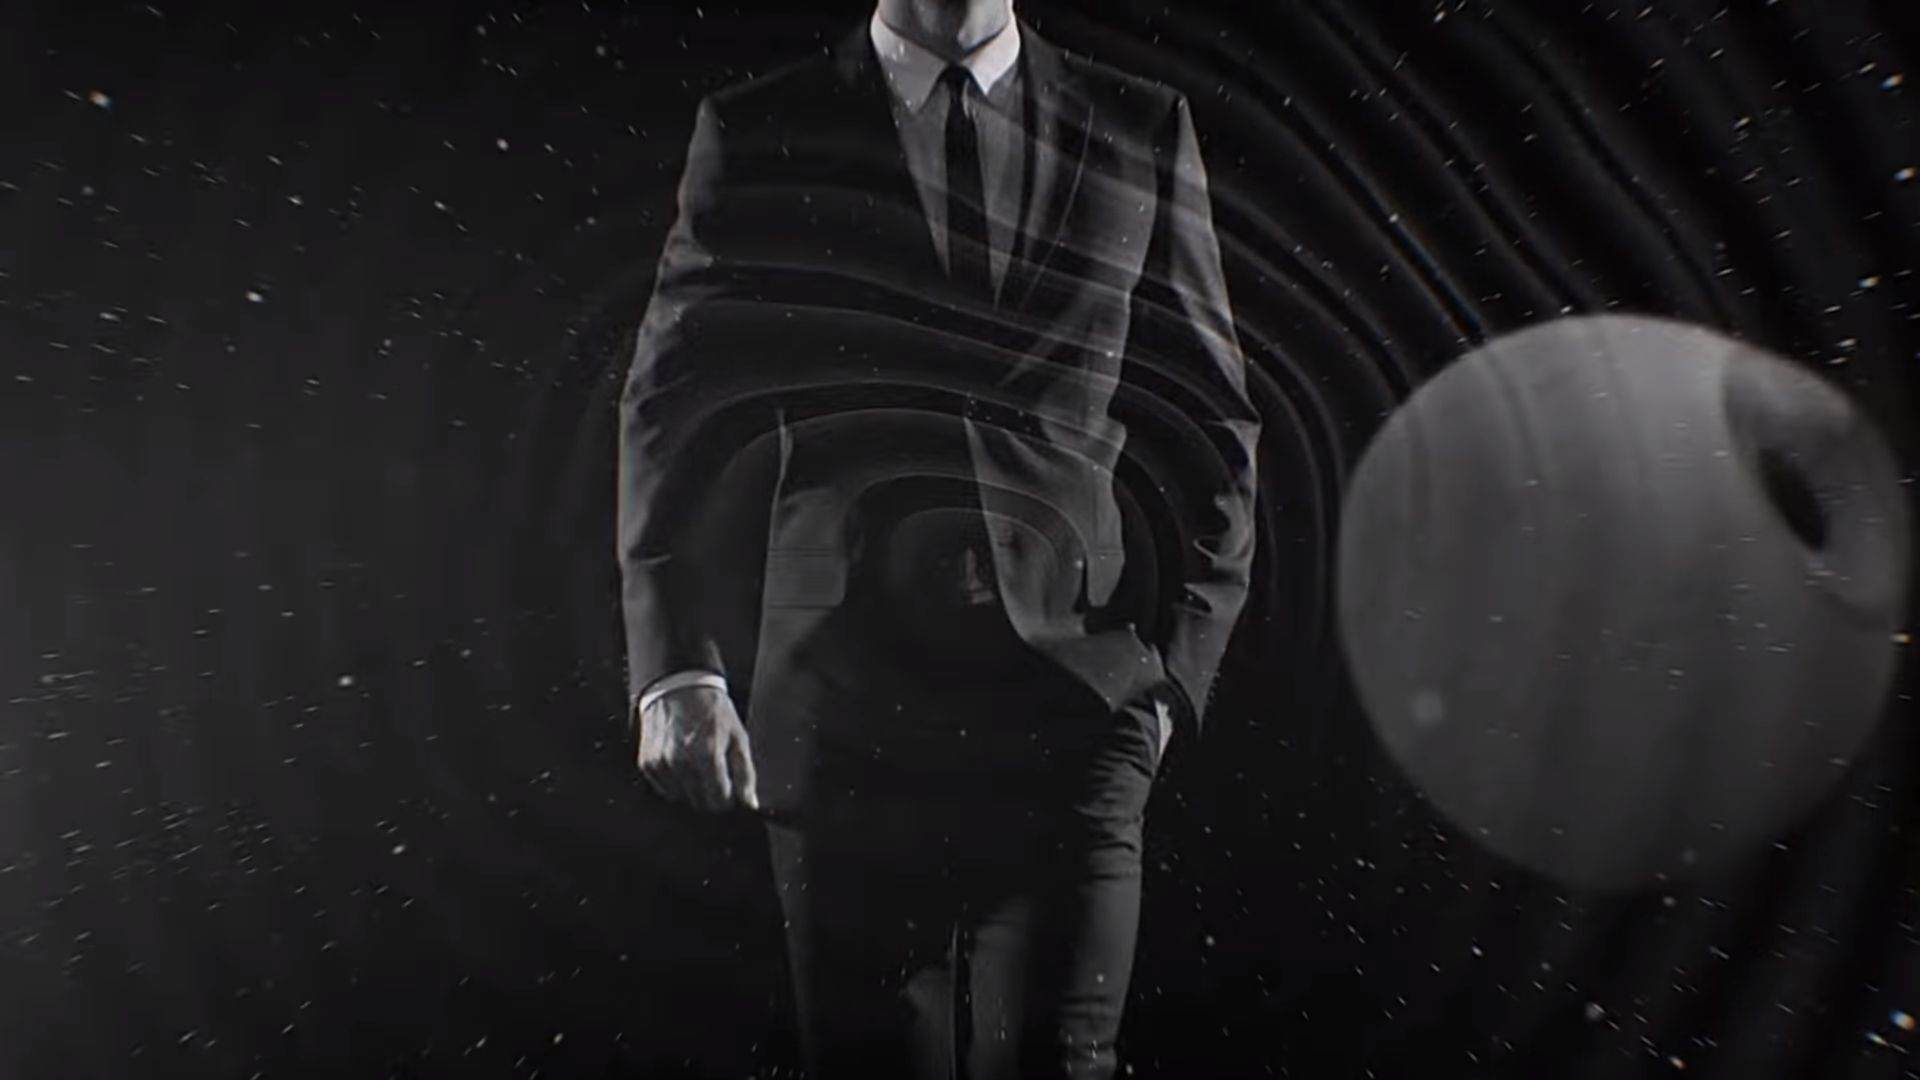 Twilight Zone HD Wallpaper